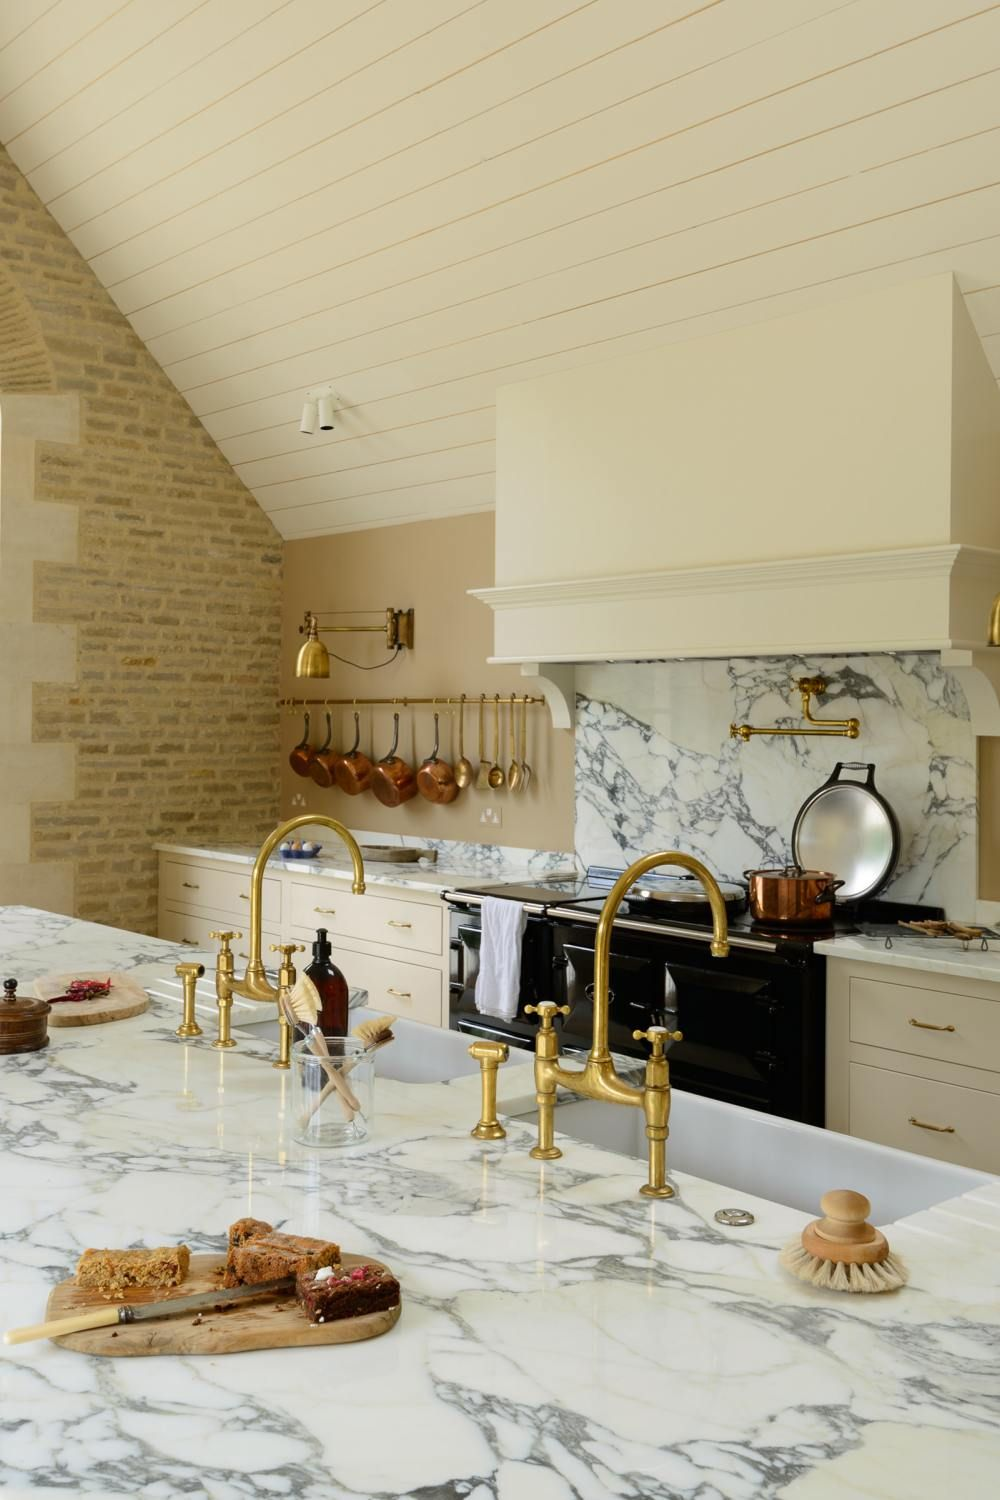 A Cotswold Barn deVOL Kitchens in 2020 Country kitchen